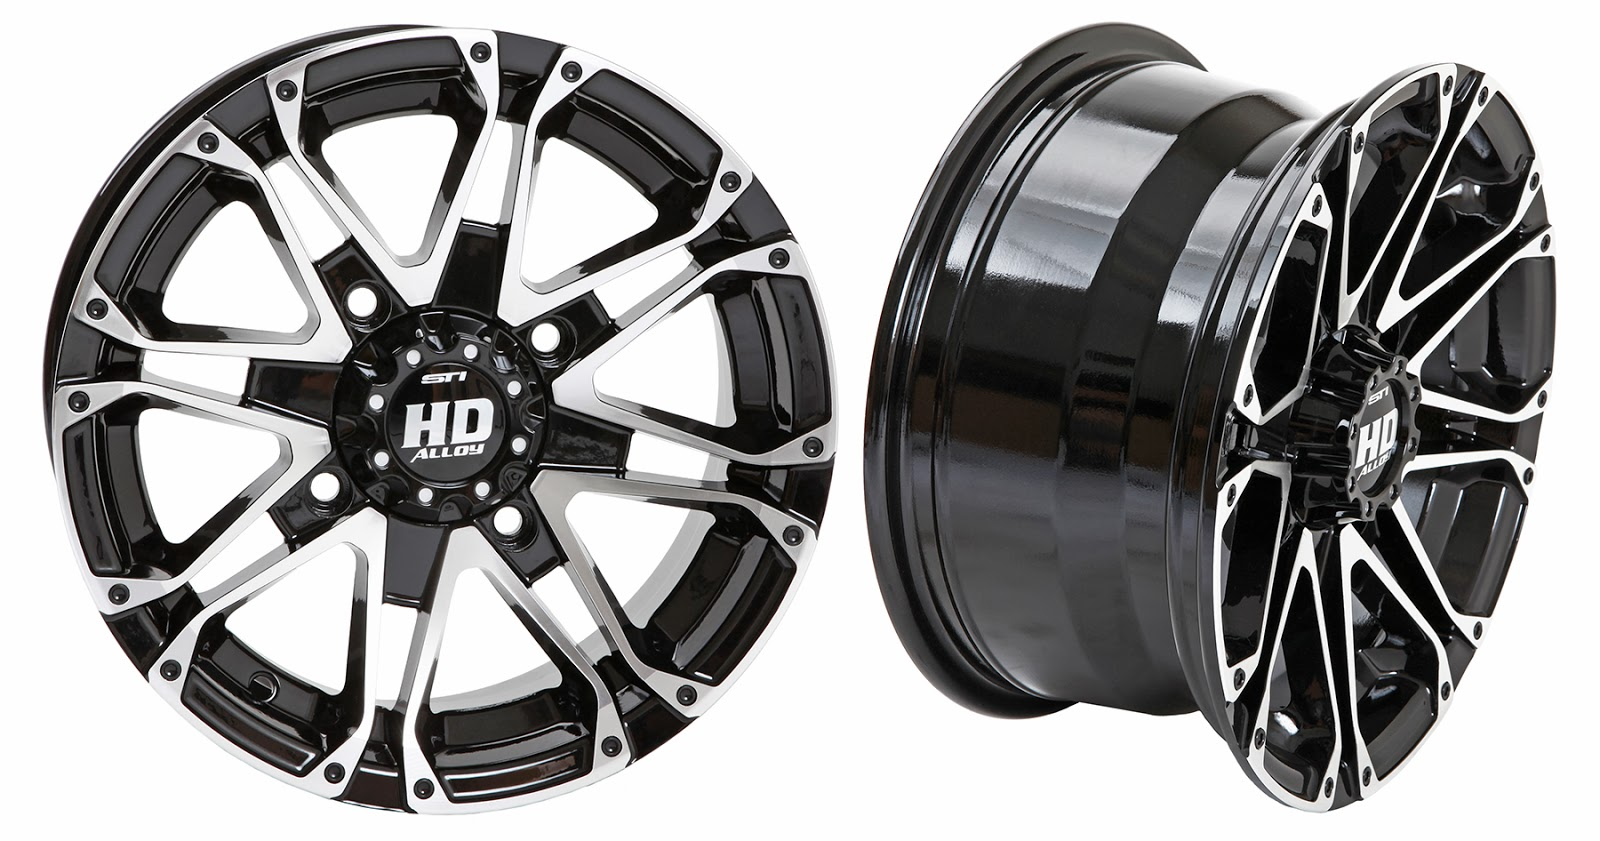 50 Inch Rims : Sti addresses inch trail width restrictions with new